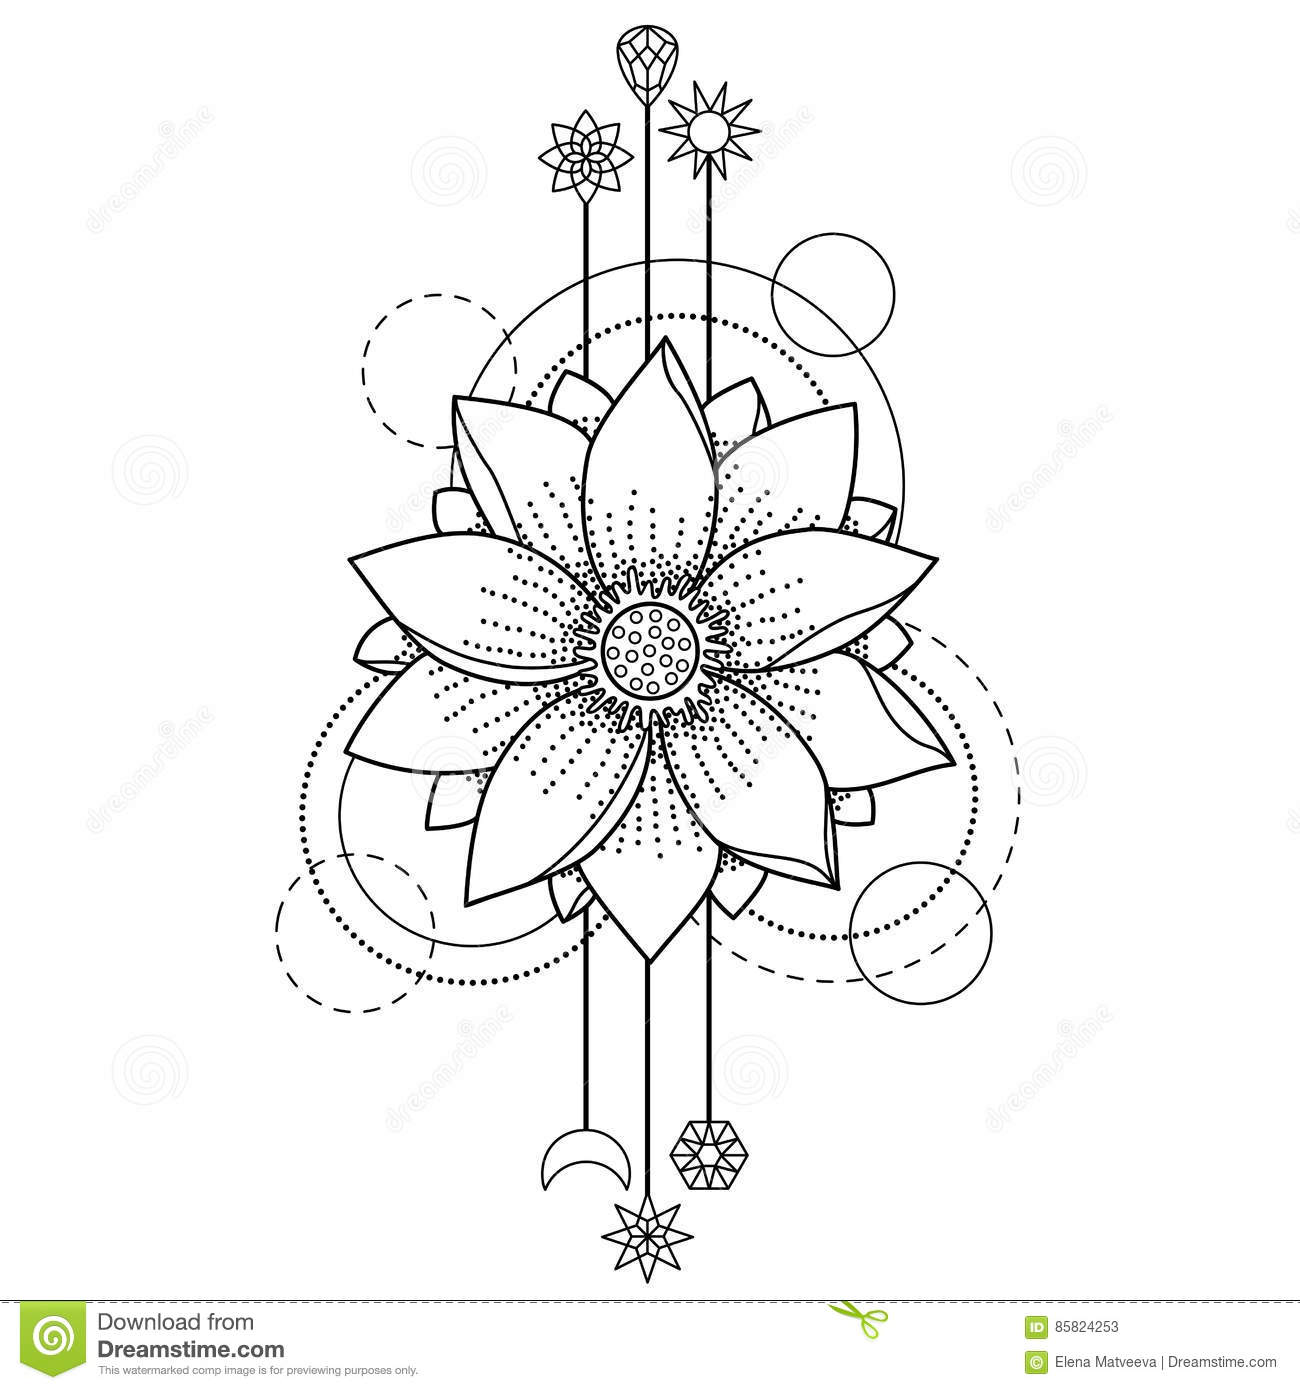 abstract space coloring pages - photo#20